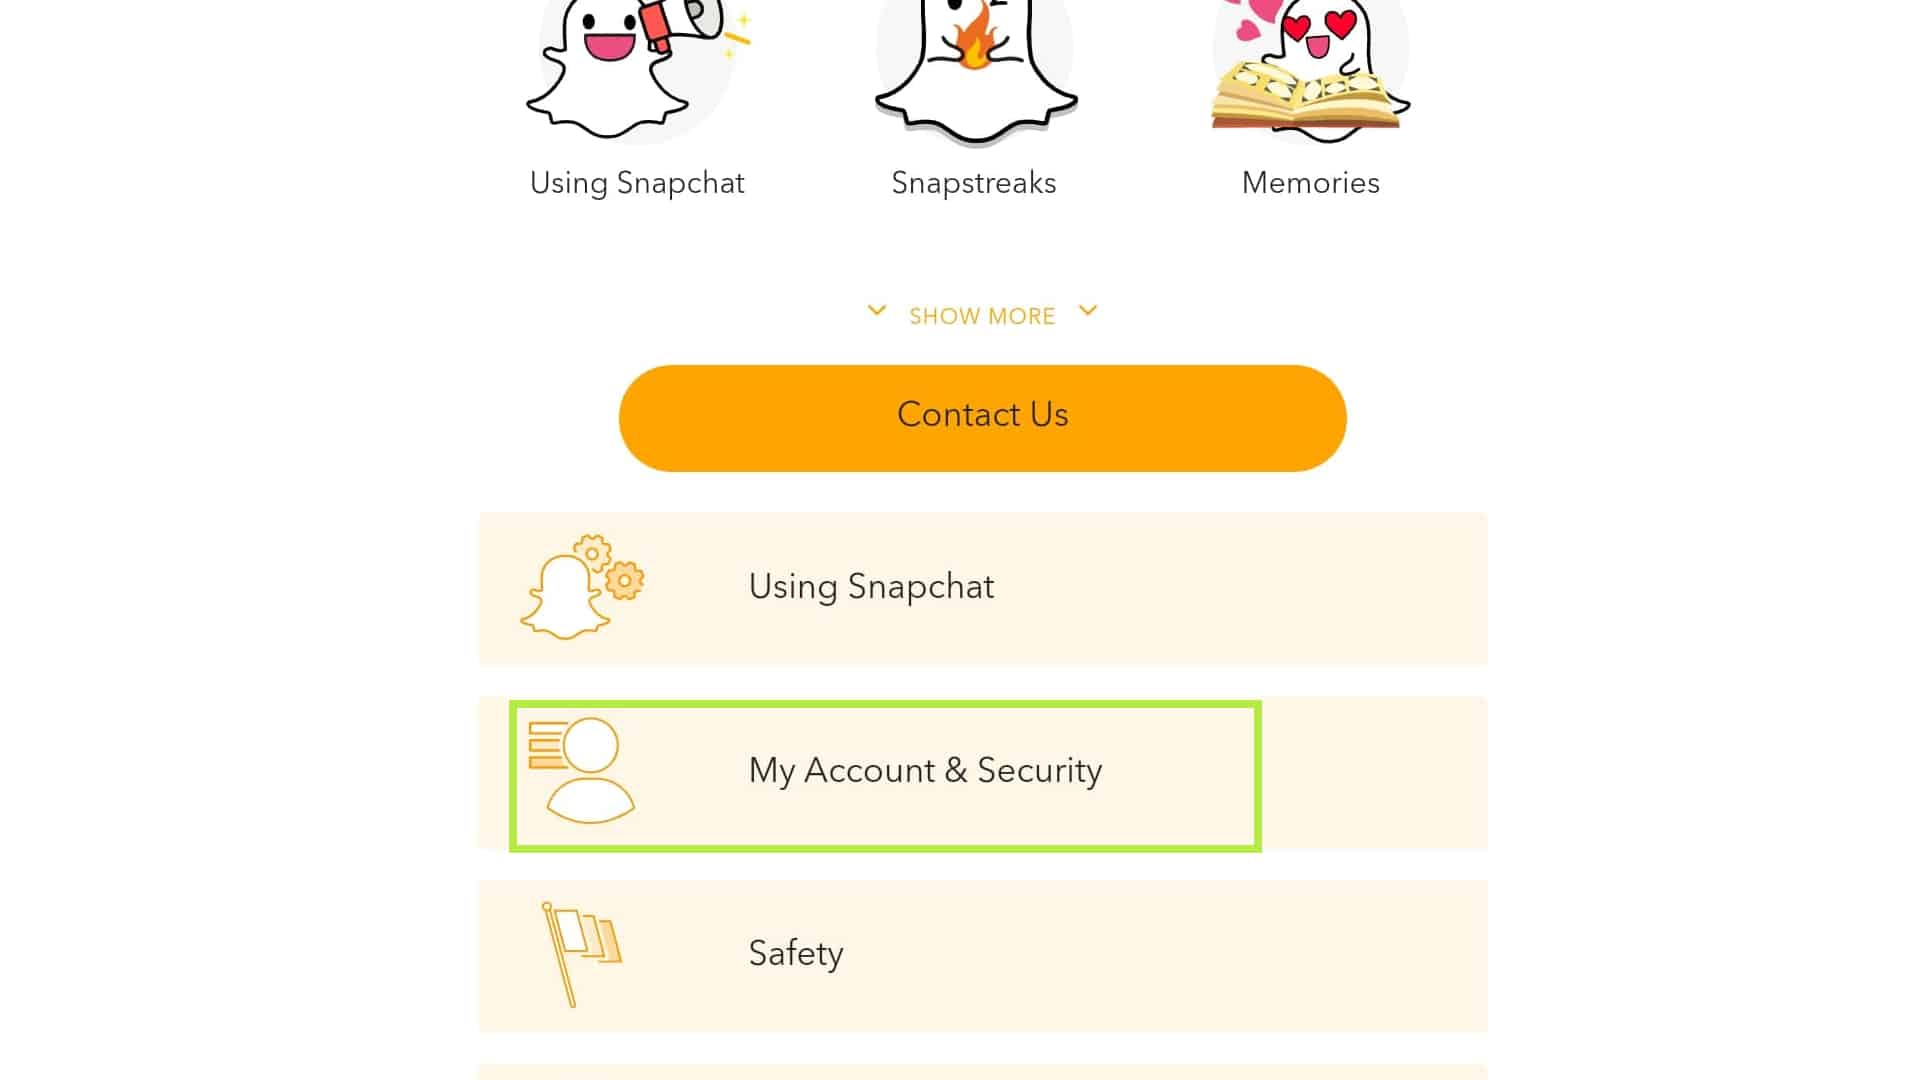 delete snapchat account and security